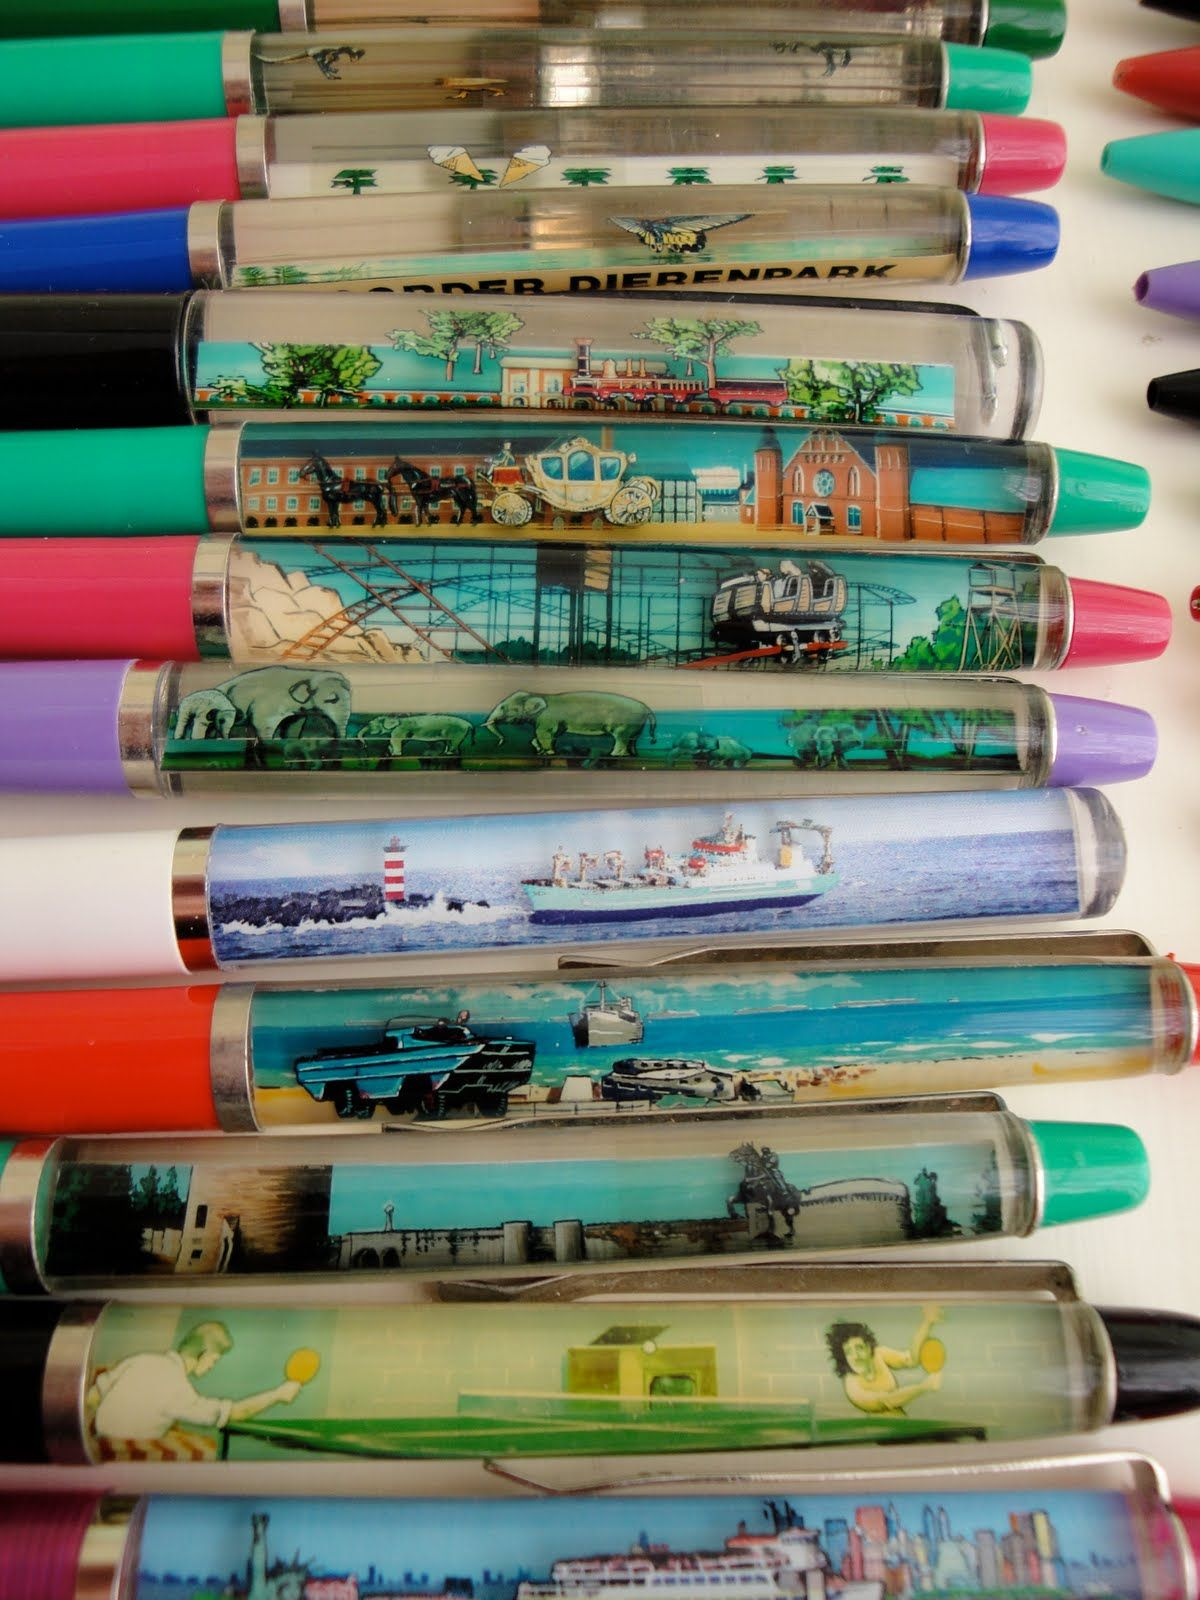 Vintage floating pens from the 1980s